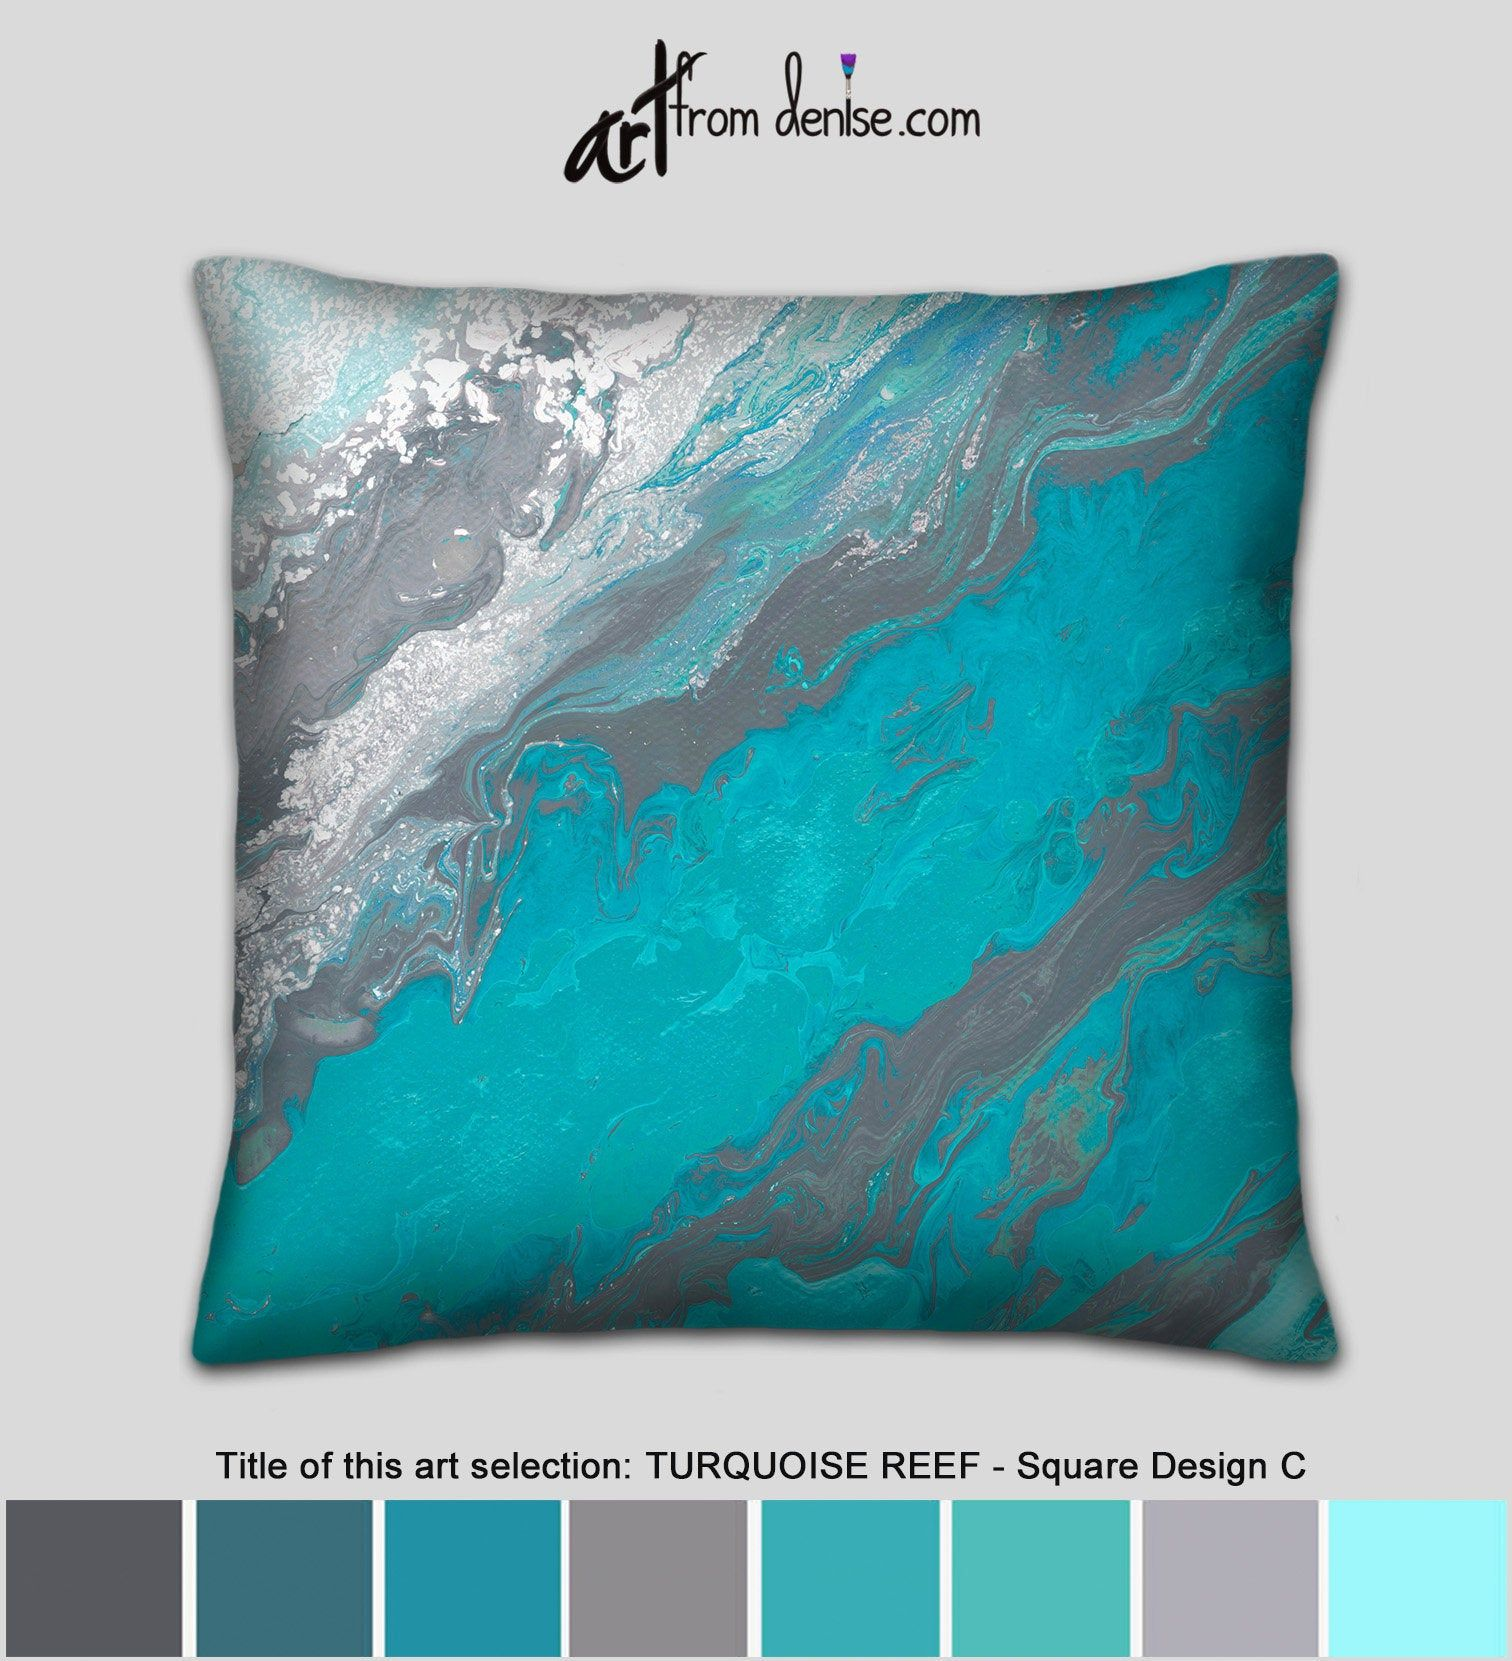 Large Couch Pillows Set Or Gray And Turquoise Decorative Pillow For Bed Decor Or Sofa Unique Abstract Blue Throw Pillow Cover Case In 2020 Couch Pillow Sets Blue Throw Pillows Large